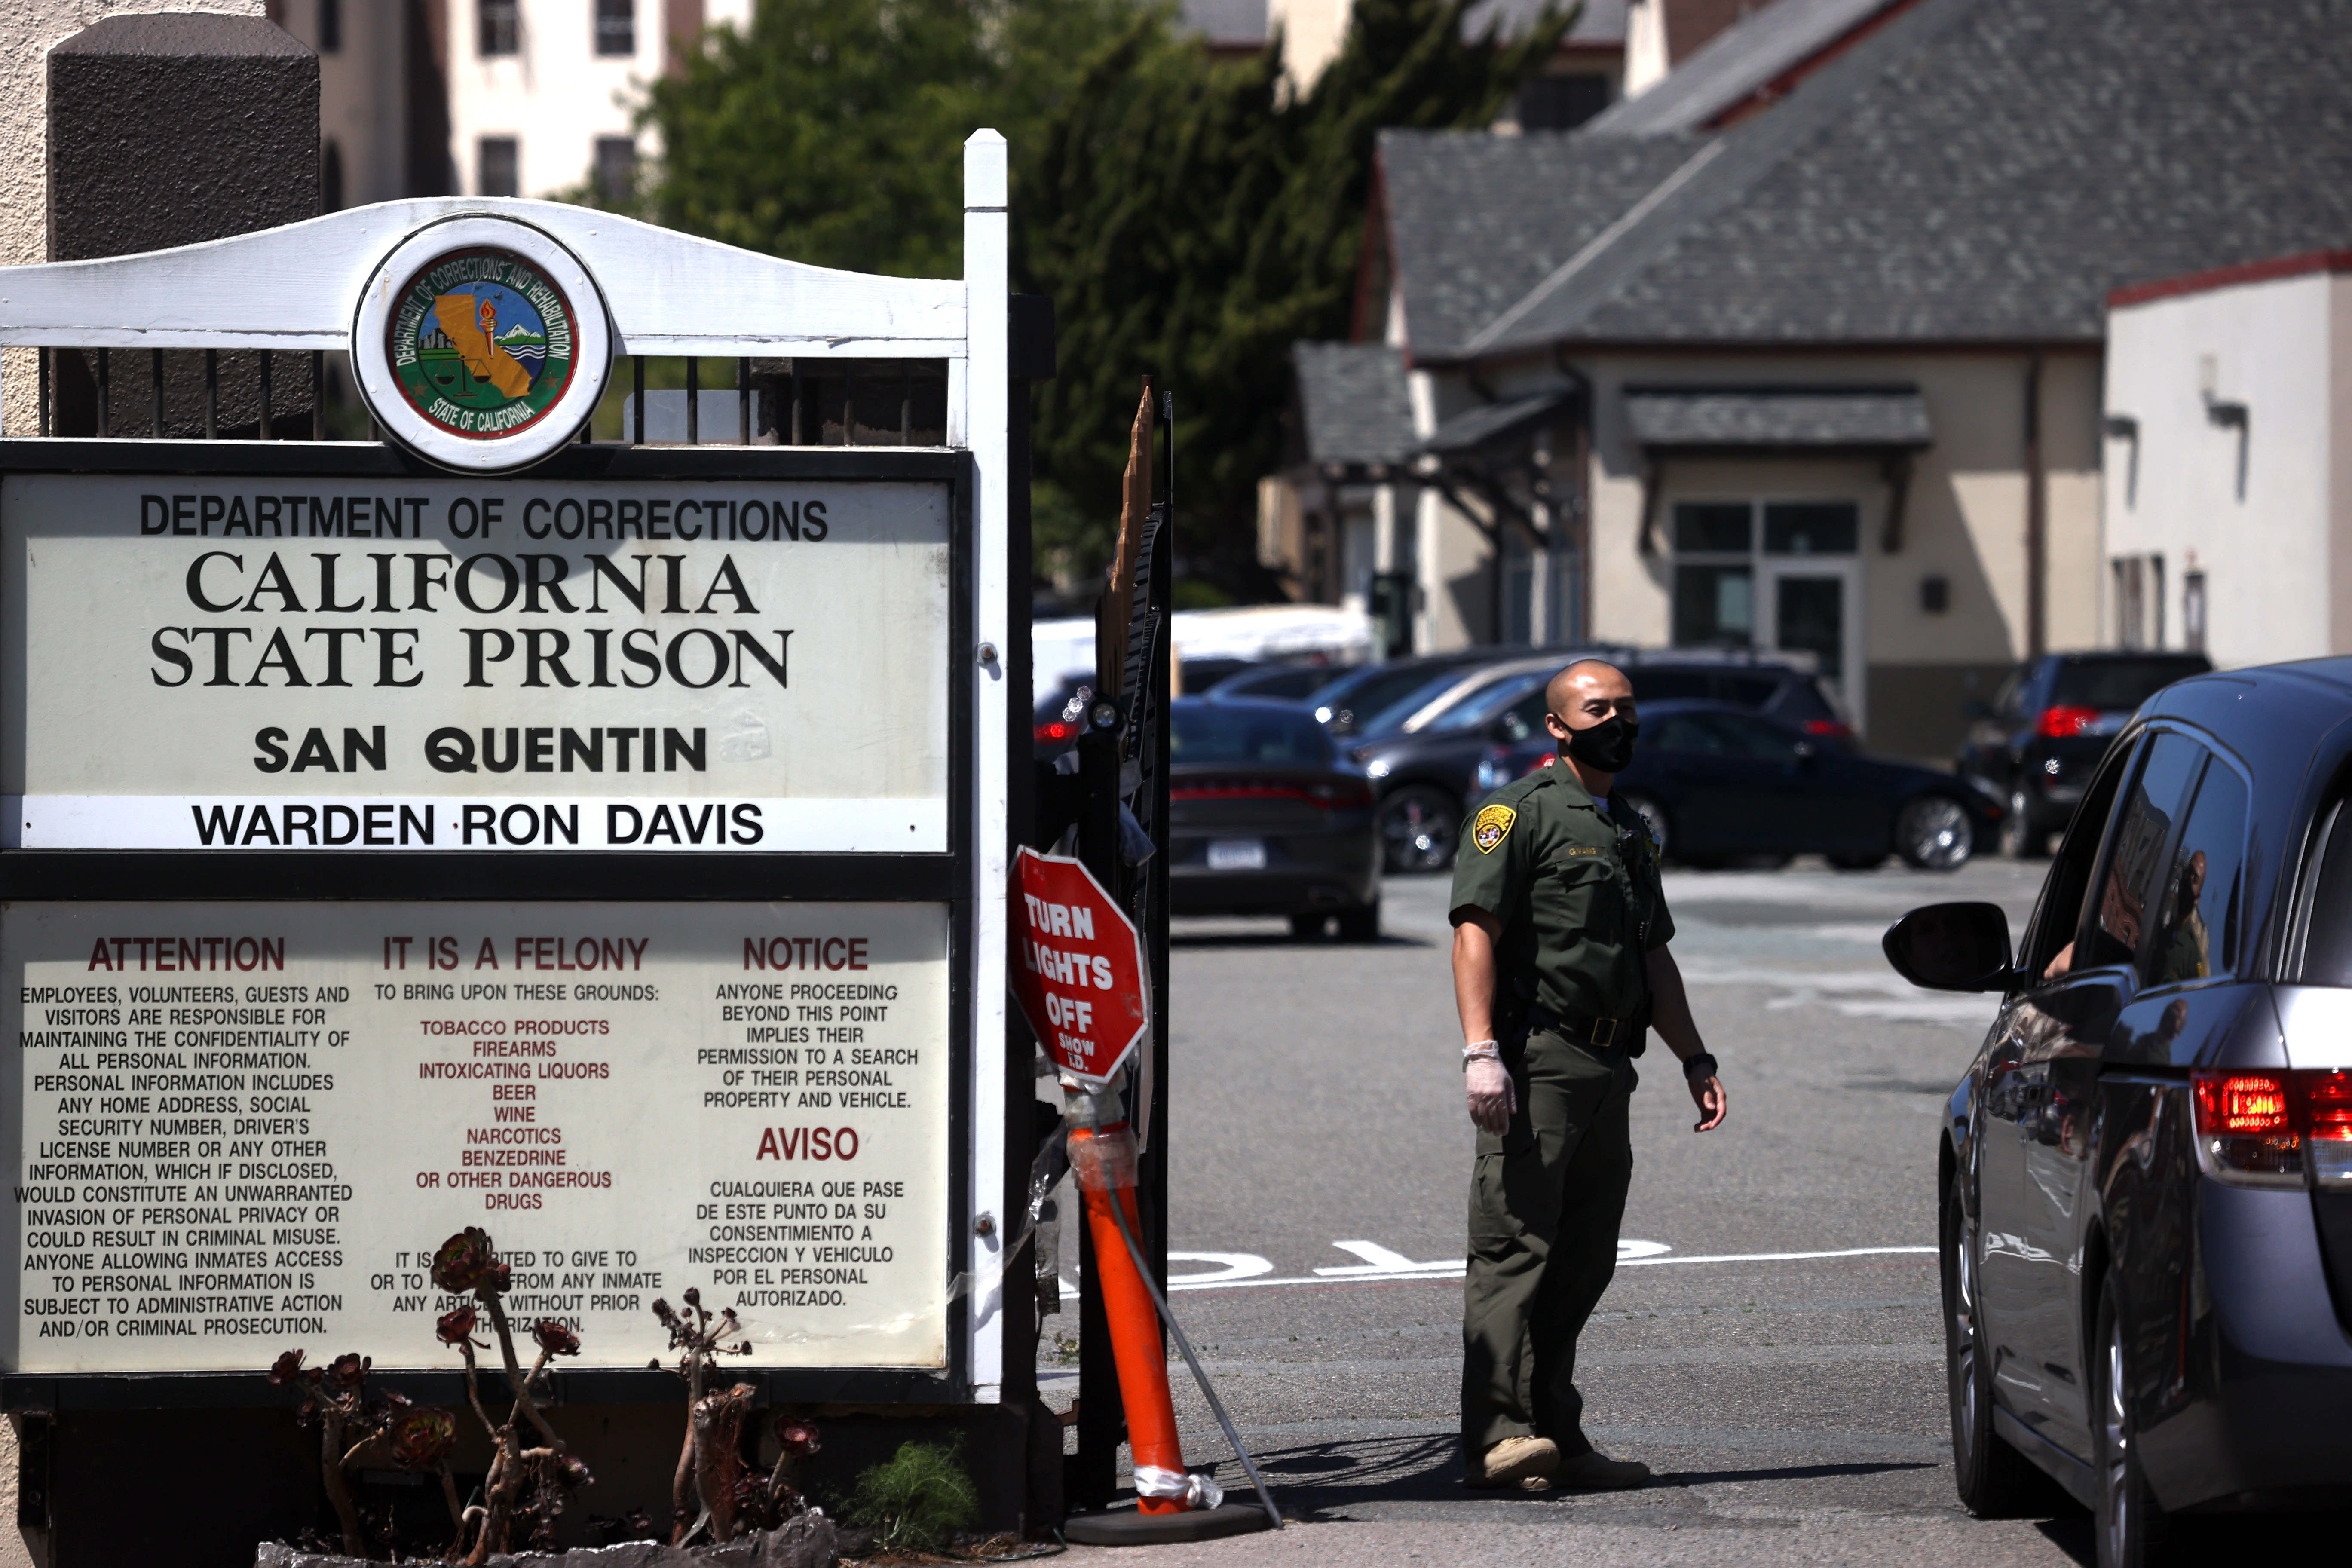 A California Department of Corrections and Rehabilitation officer wears a protective mask as he stands guard at the front gate of San Quentin State Prison on Monday, June 29, in San Quentin, California.